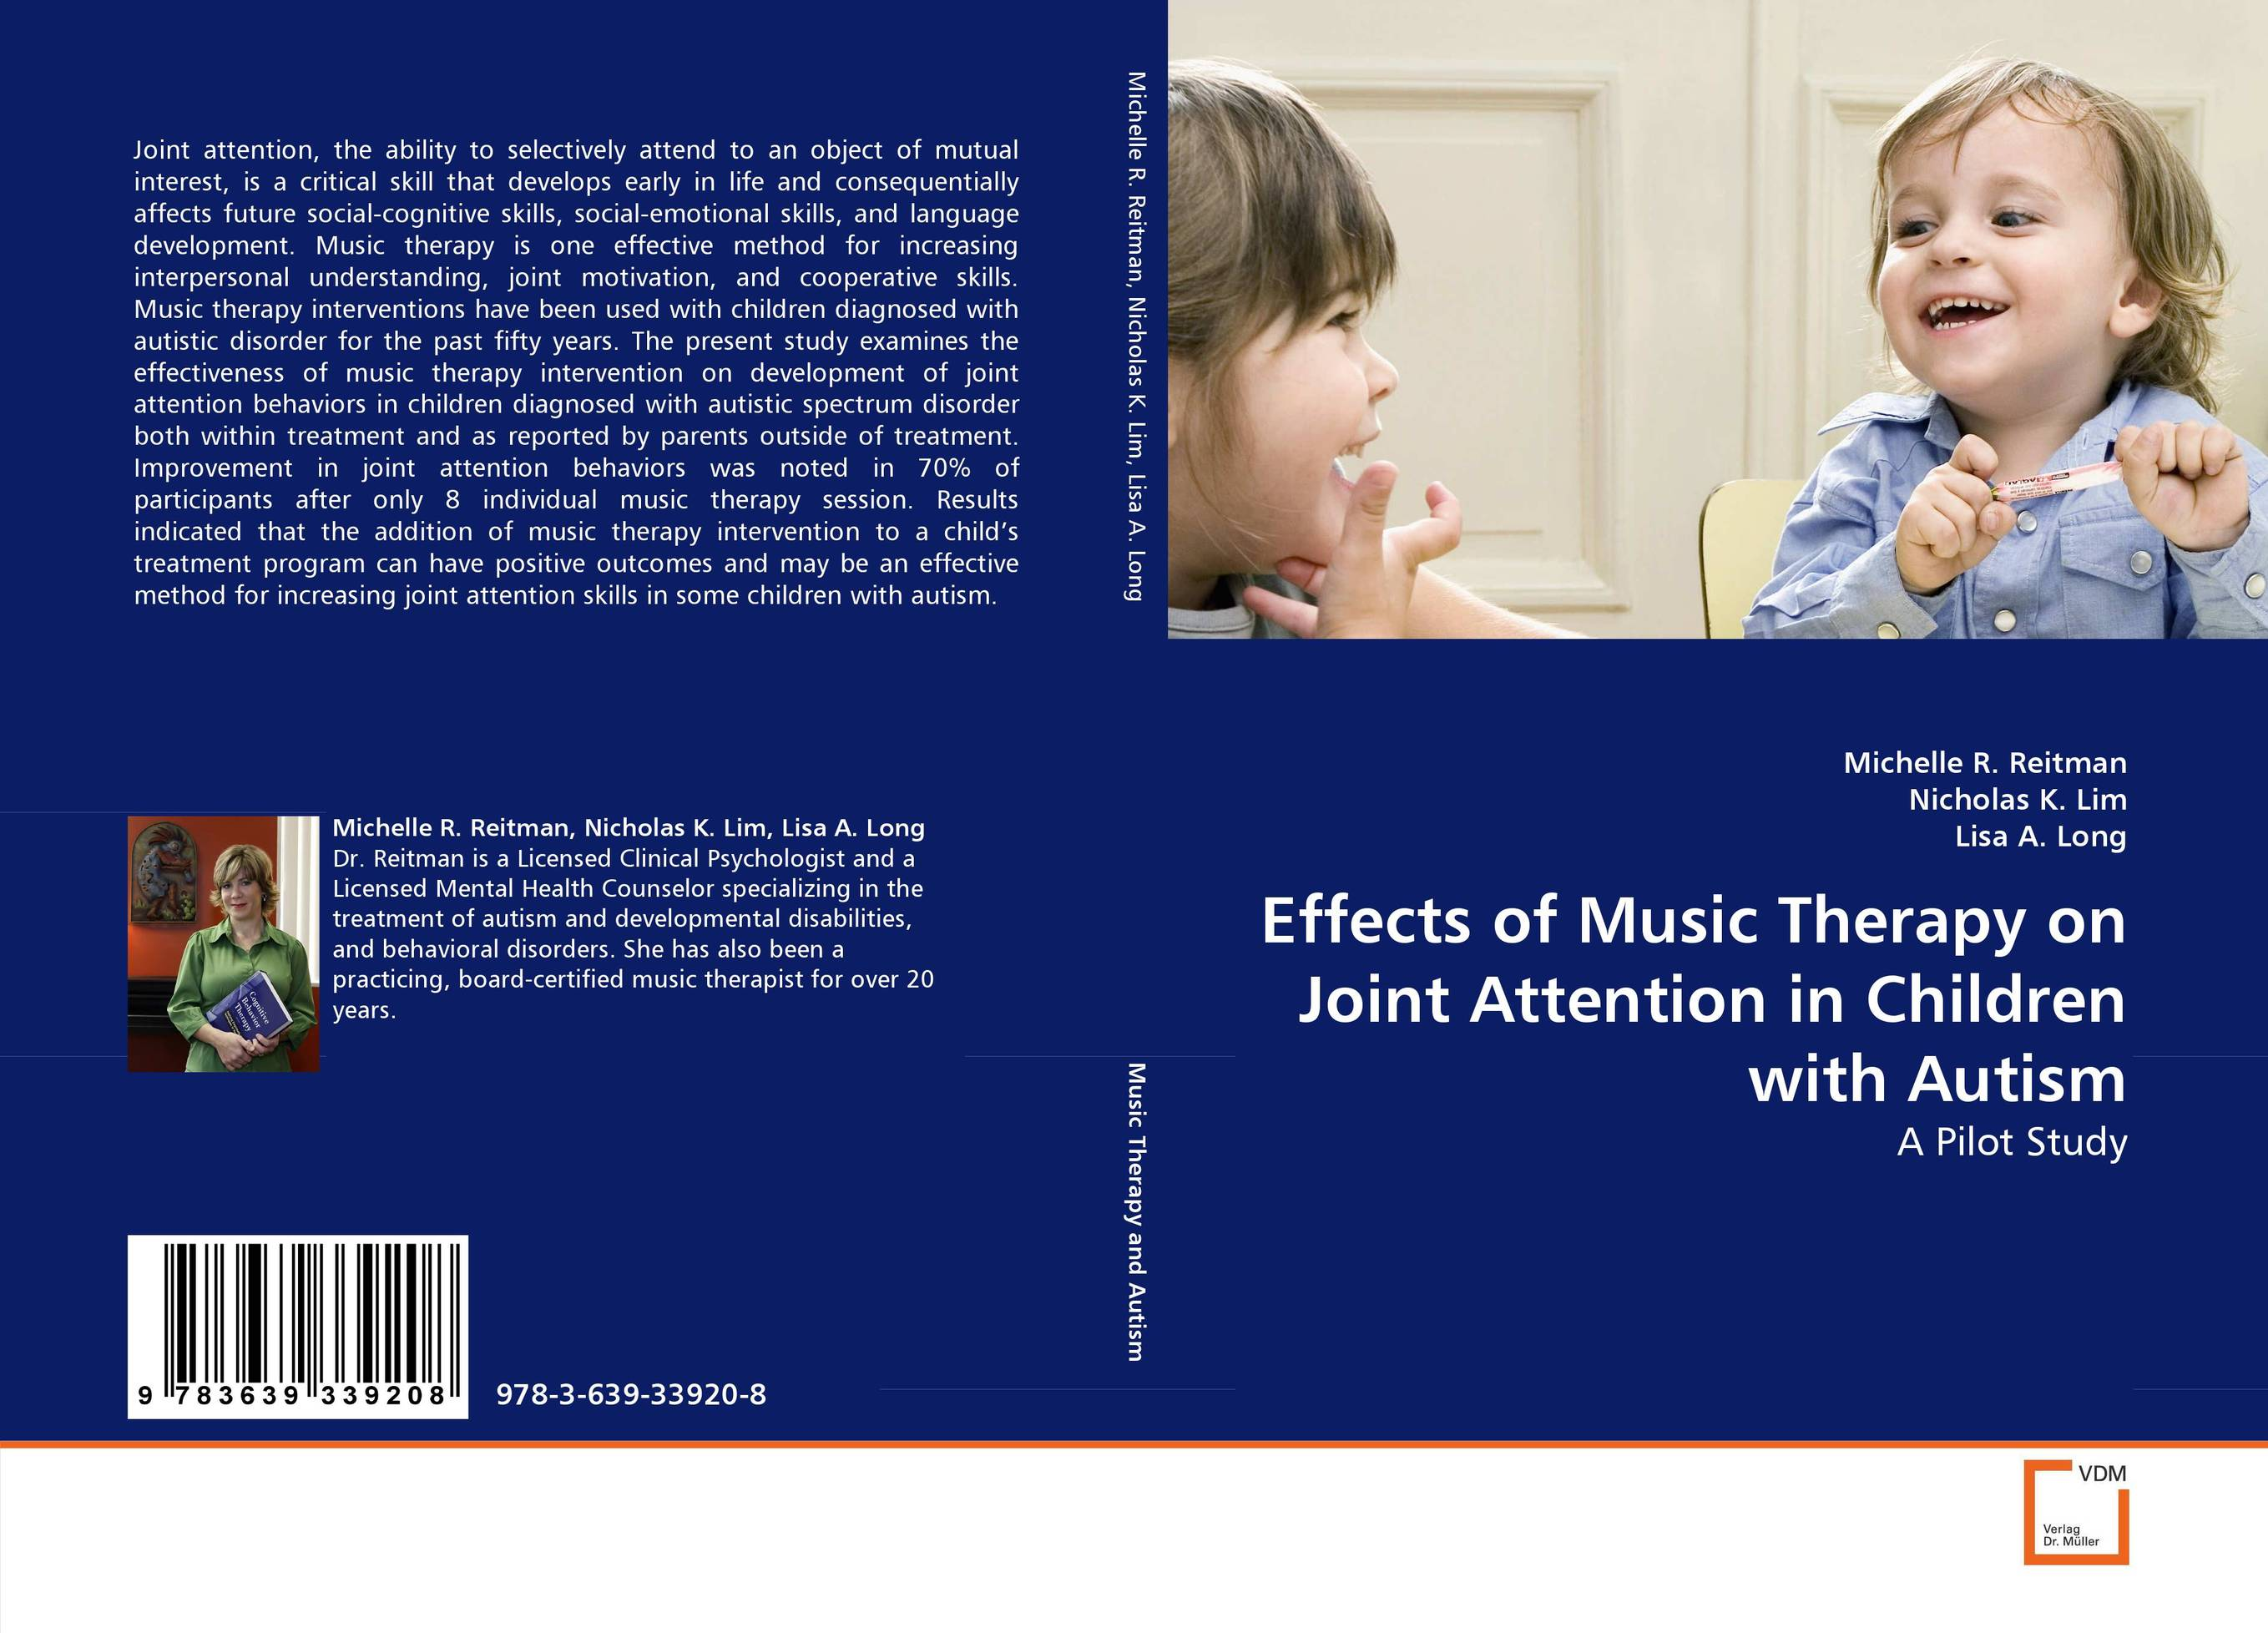 Effects of Music Therapy on Joint Attention in Children with Autism купить